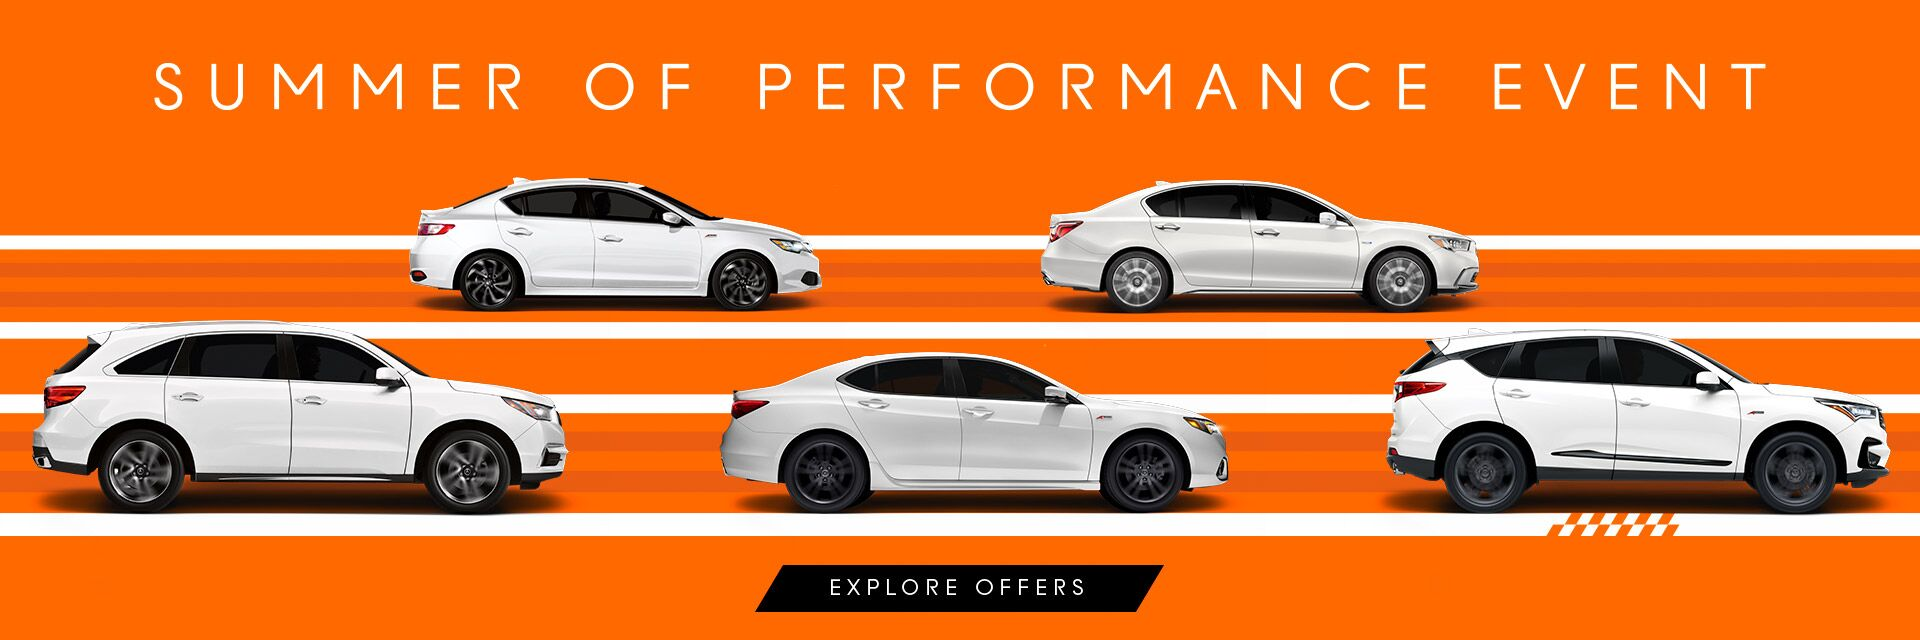 used acura los angeles county previous new tustin for next orange dealer cars dealership dch